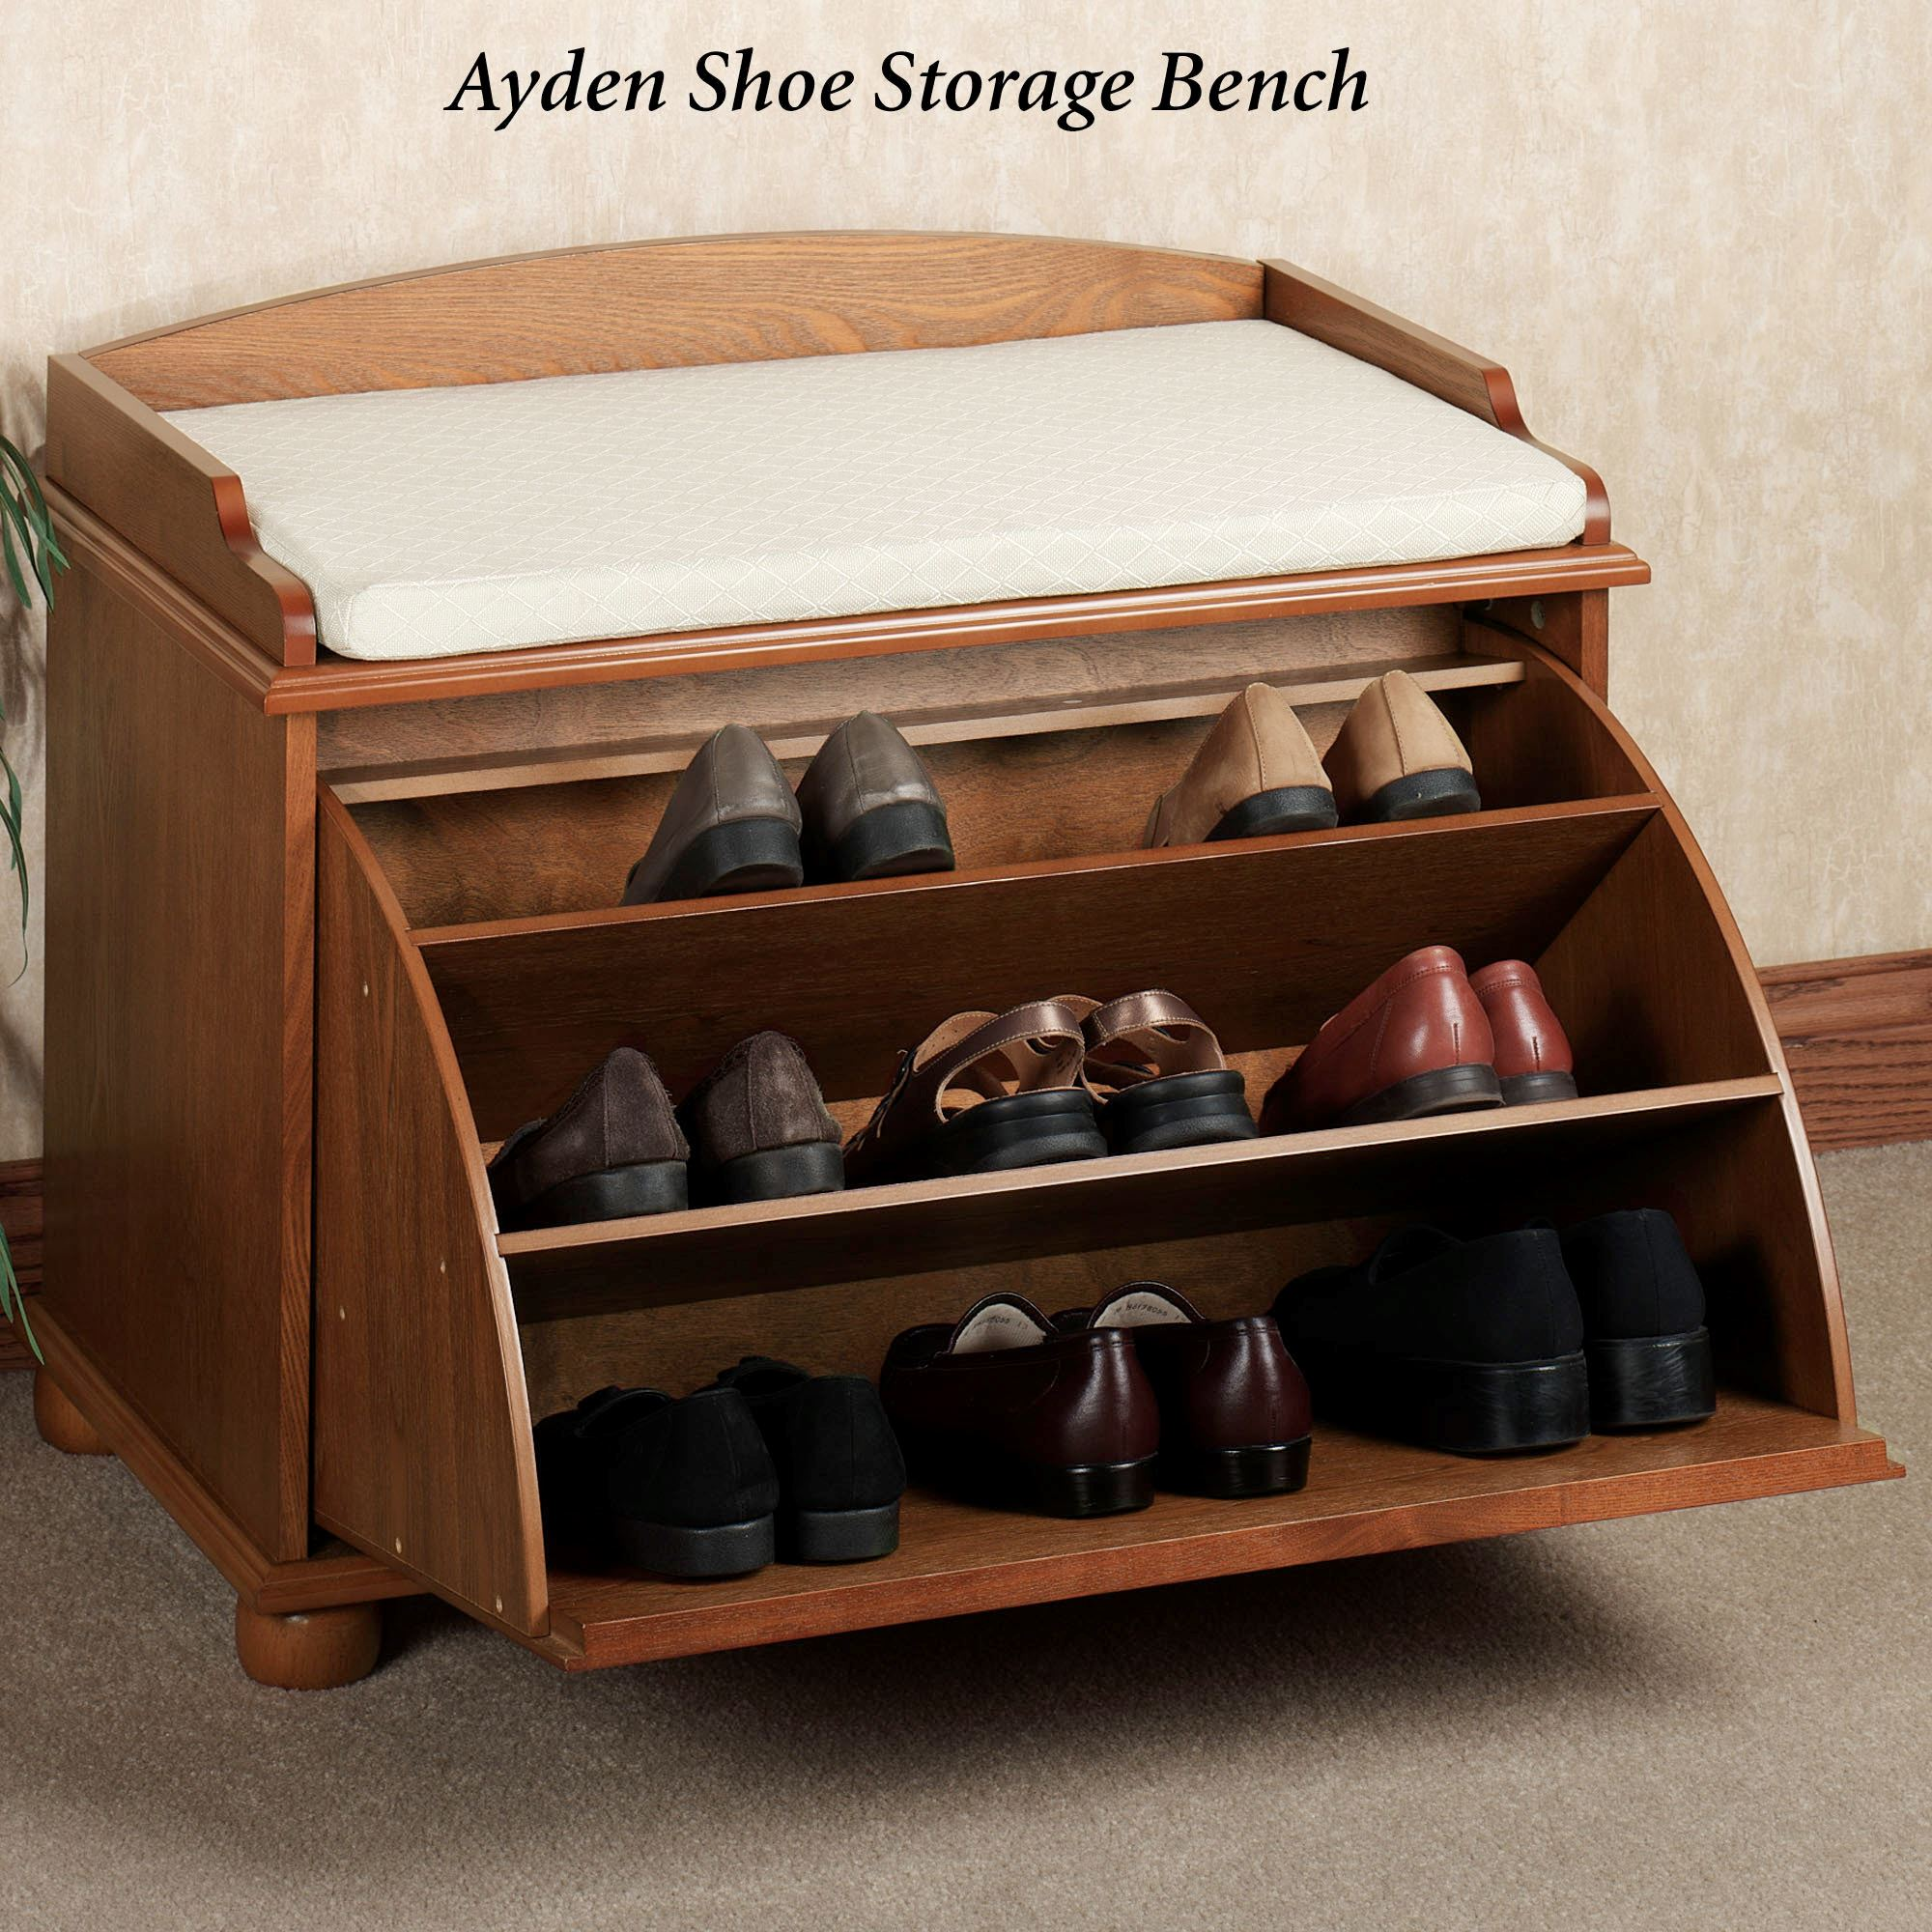 & Auston Shoe Storage Bench